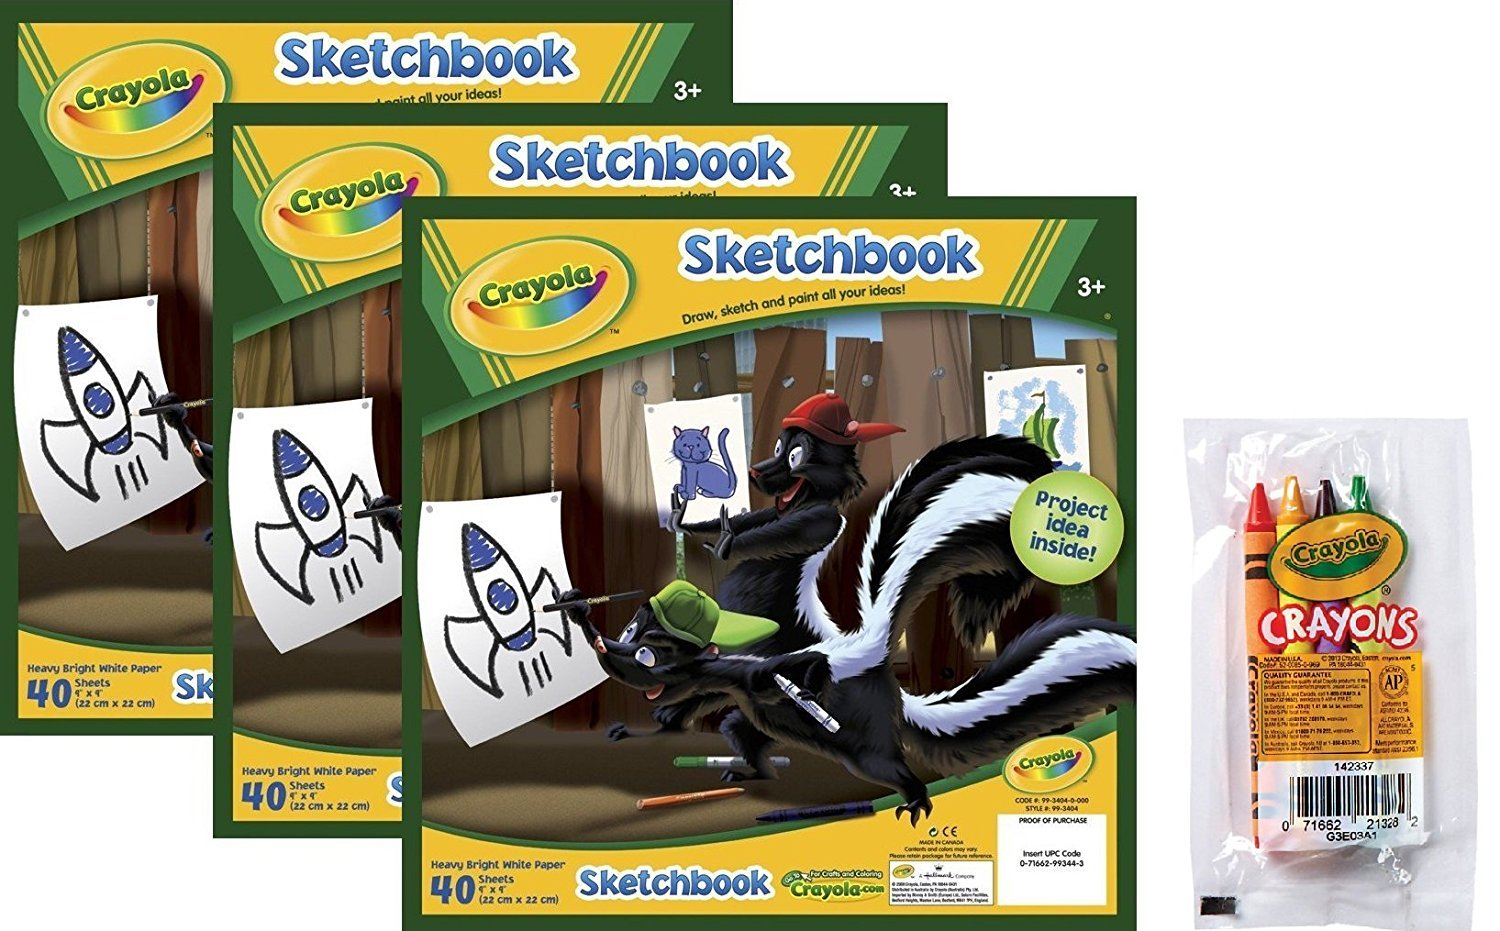 Crayola Sketchbook 120 Total Sheets 3-Pack Bundled with a 4-Pack of Cello Wrapped Crayola Crayons 99-3404